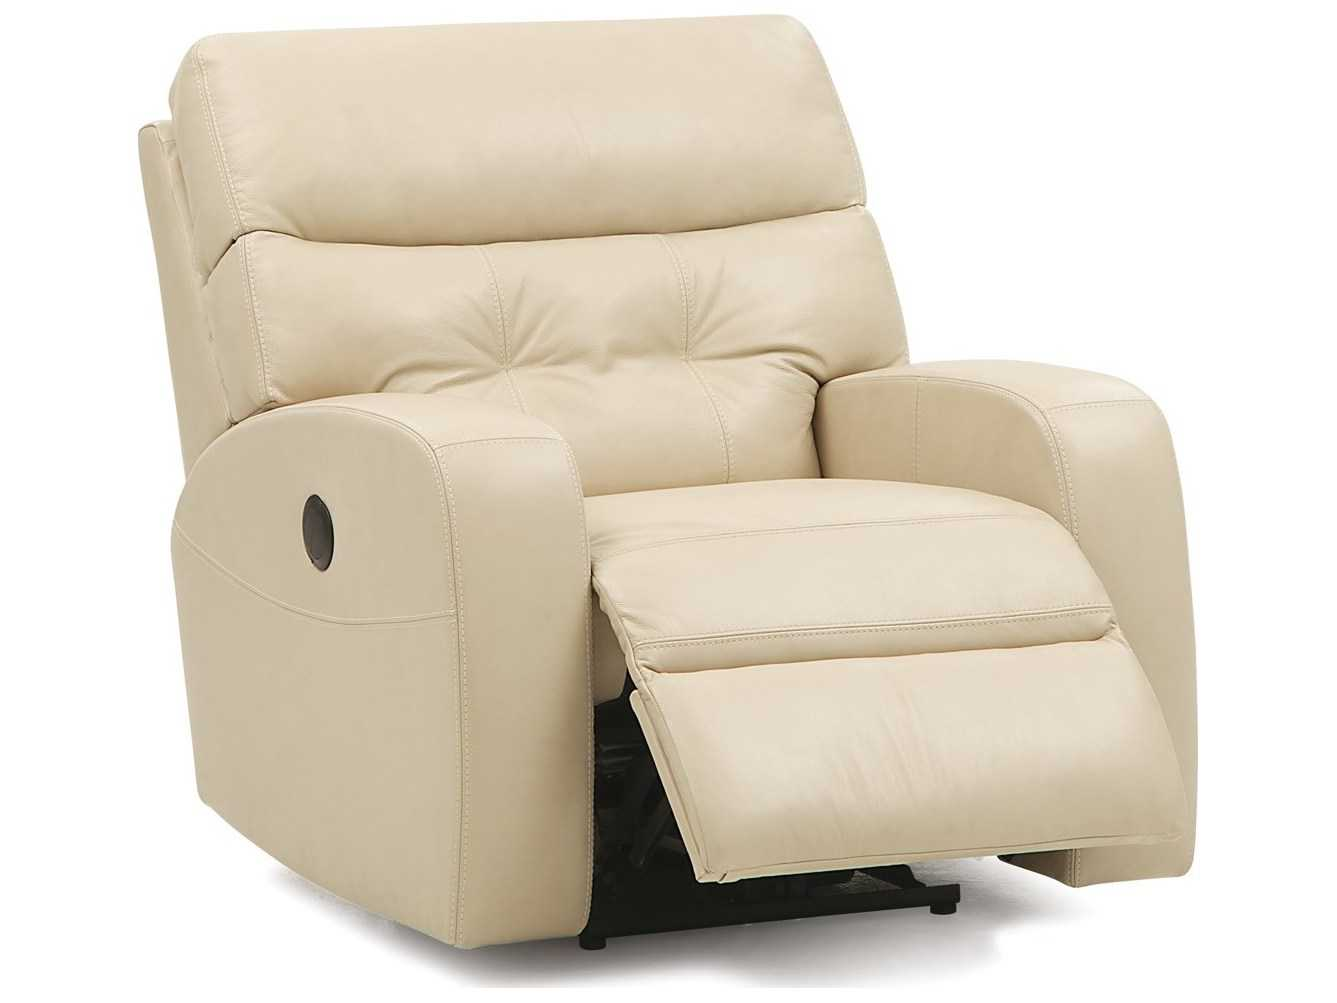 Swivel Rocker Recliner Chair Palliser Southgate Swivel Rocker Recliner Chair